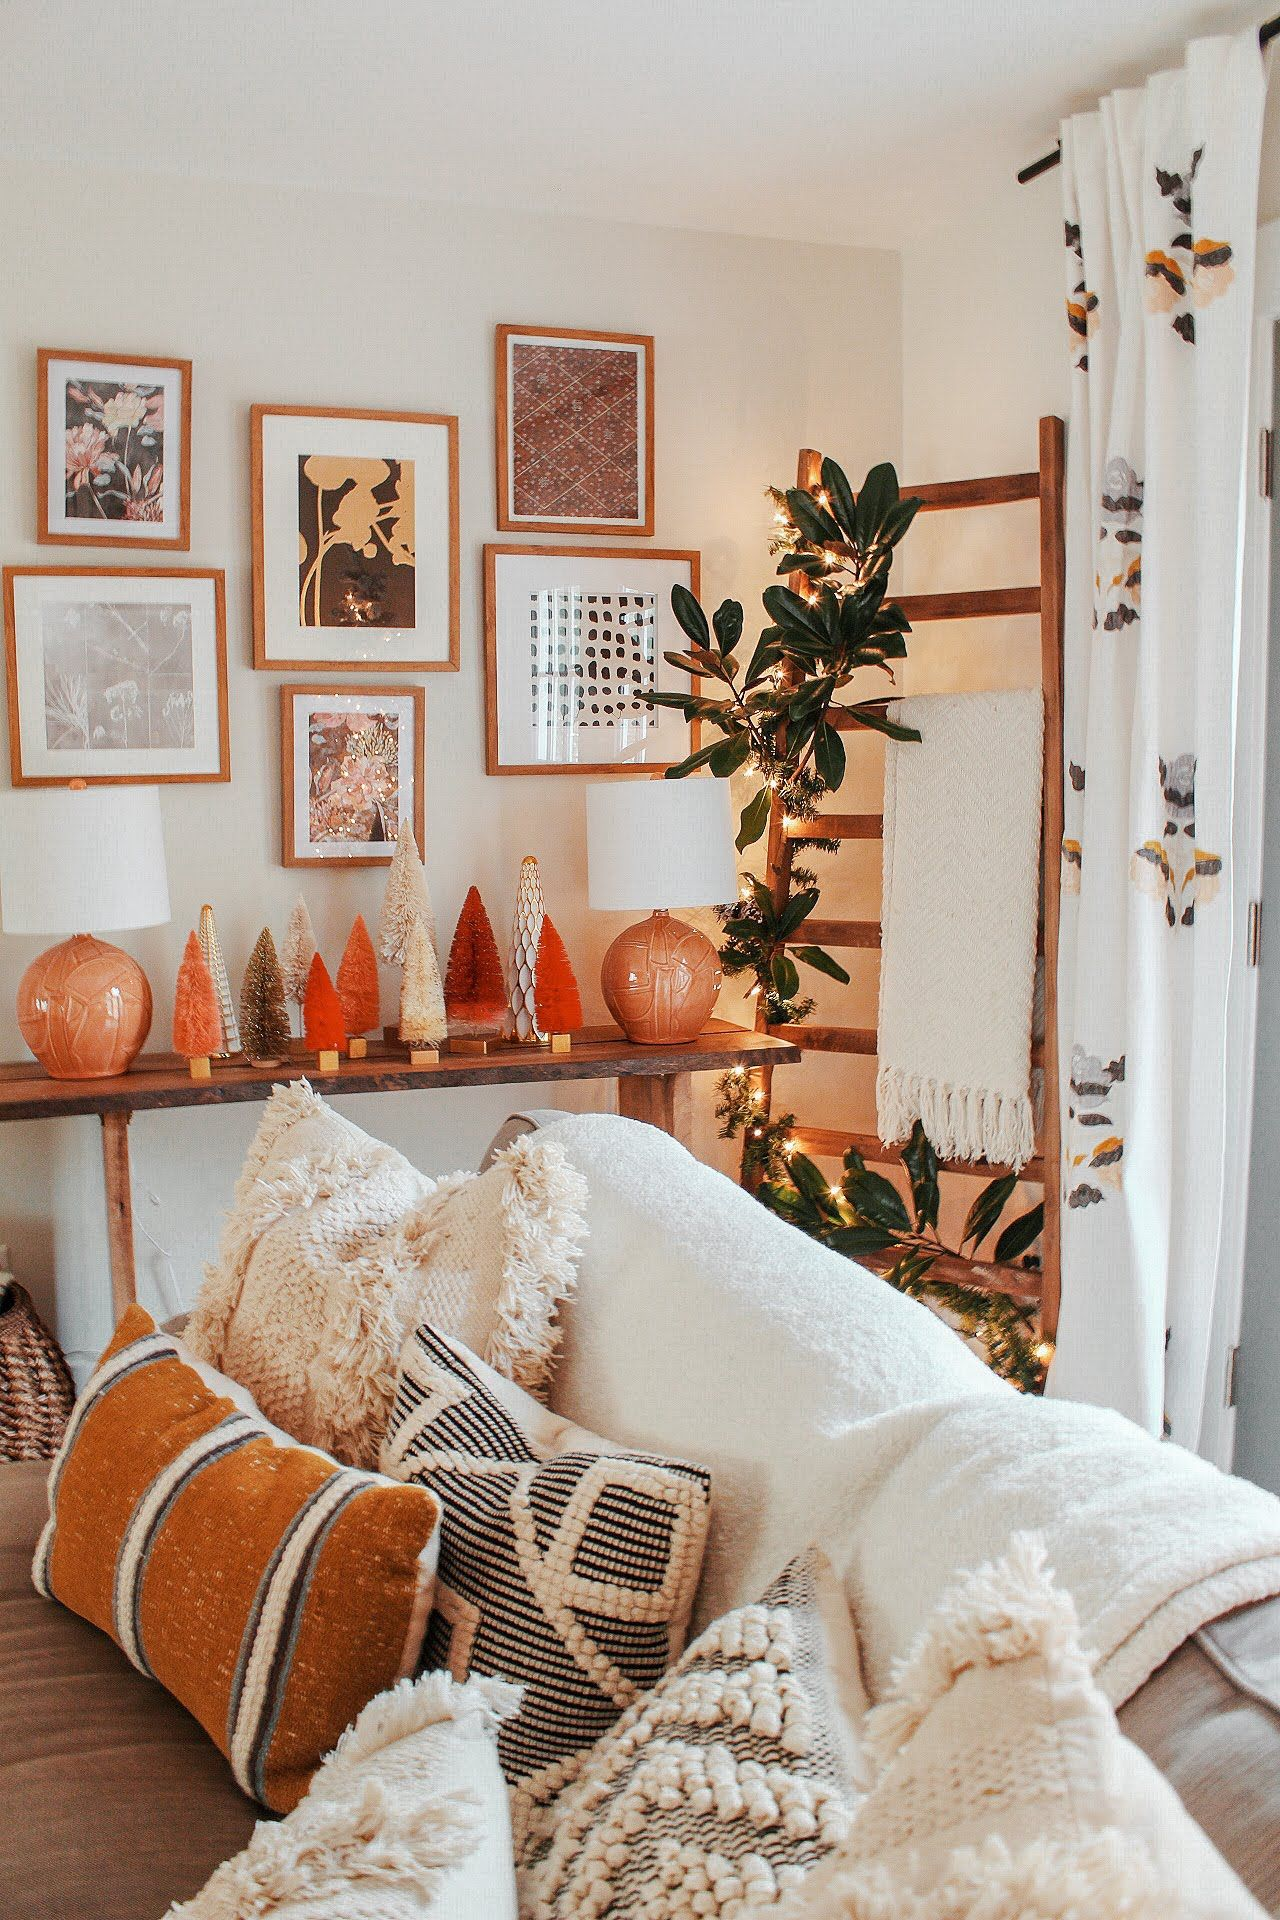 farmhouse decor bohemian room living bedroom diy christmas interior fall furniture